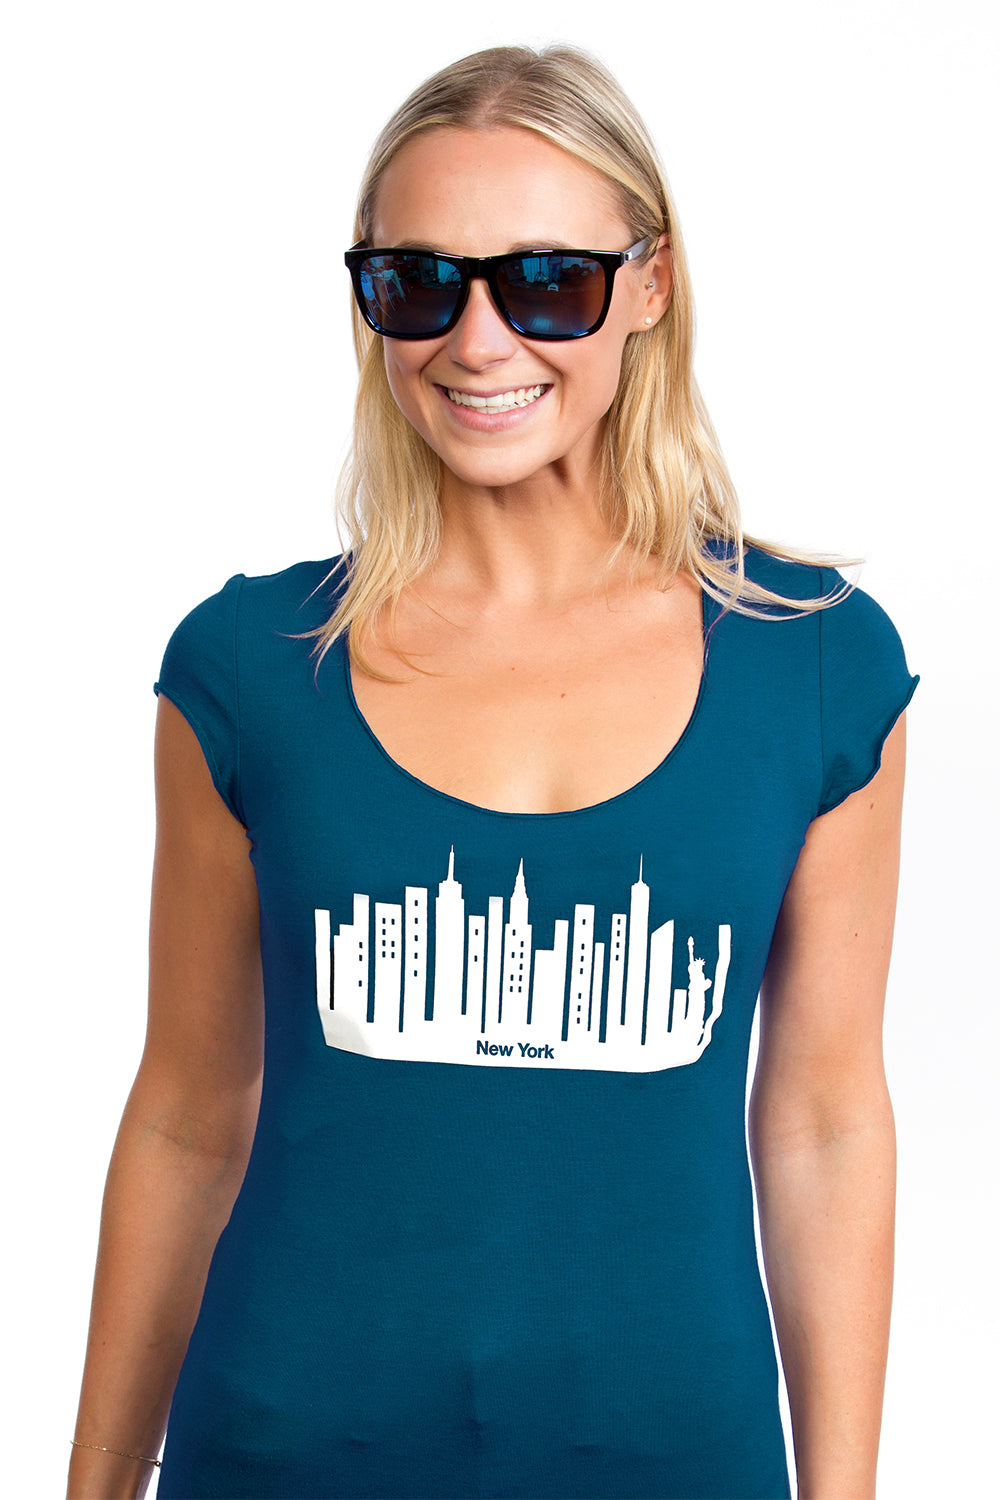 Women's New York T-shirt - Bamboo